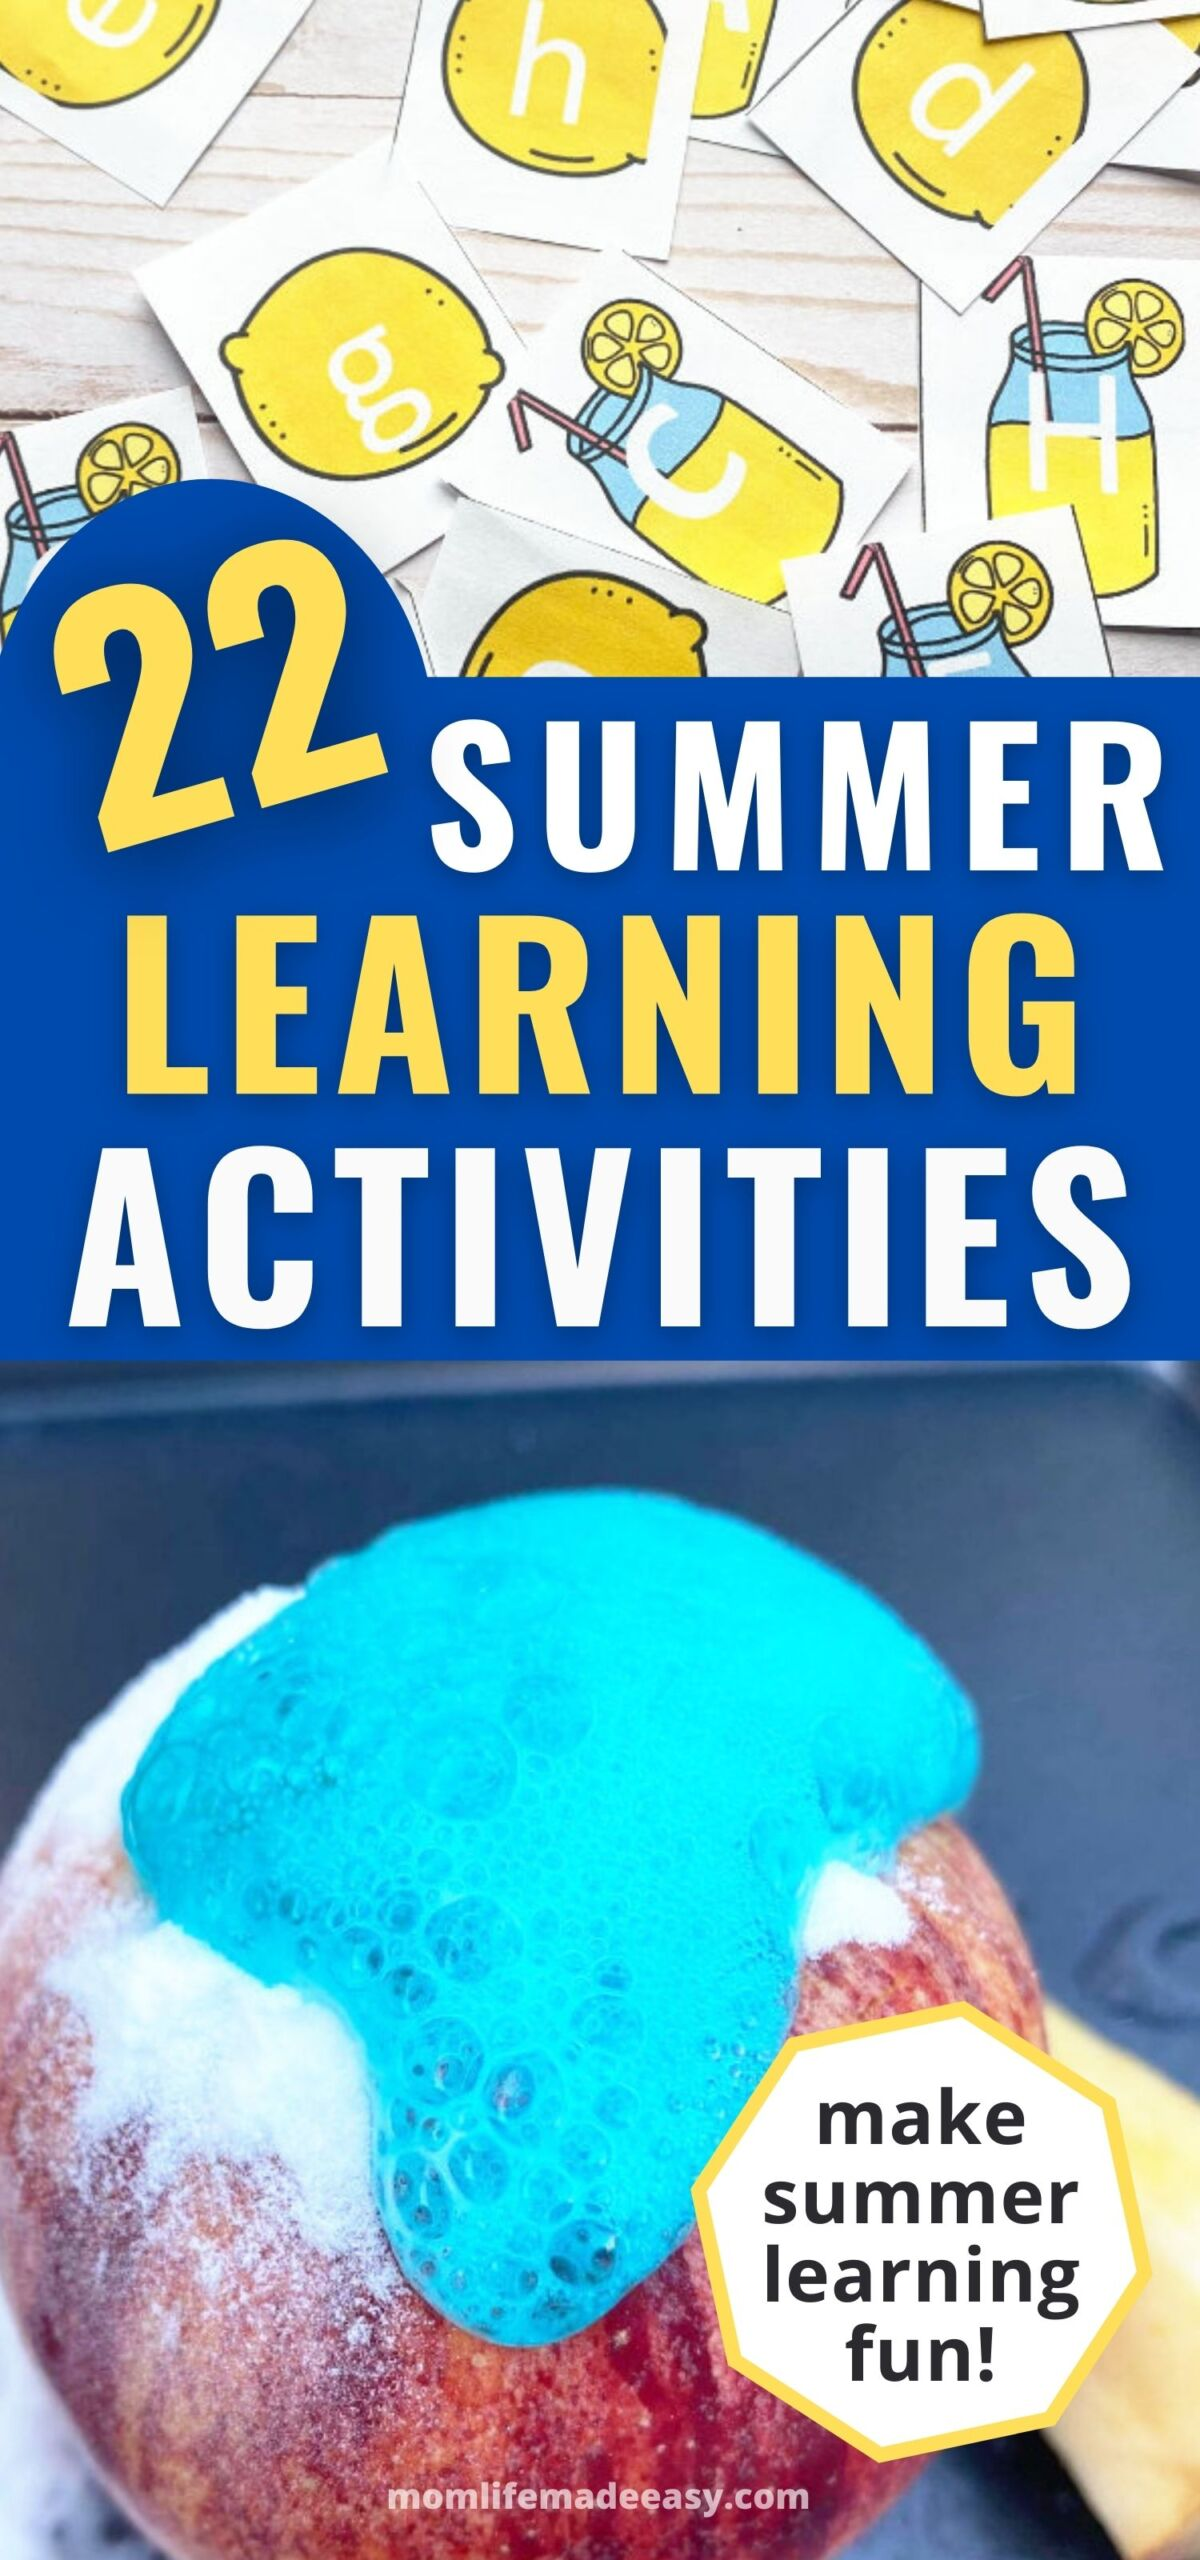 promotional collage of some of the featured summer learning activities on a blue background with text